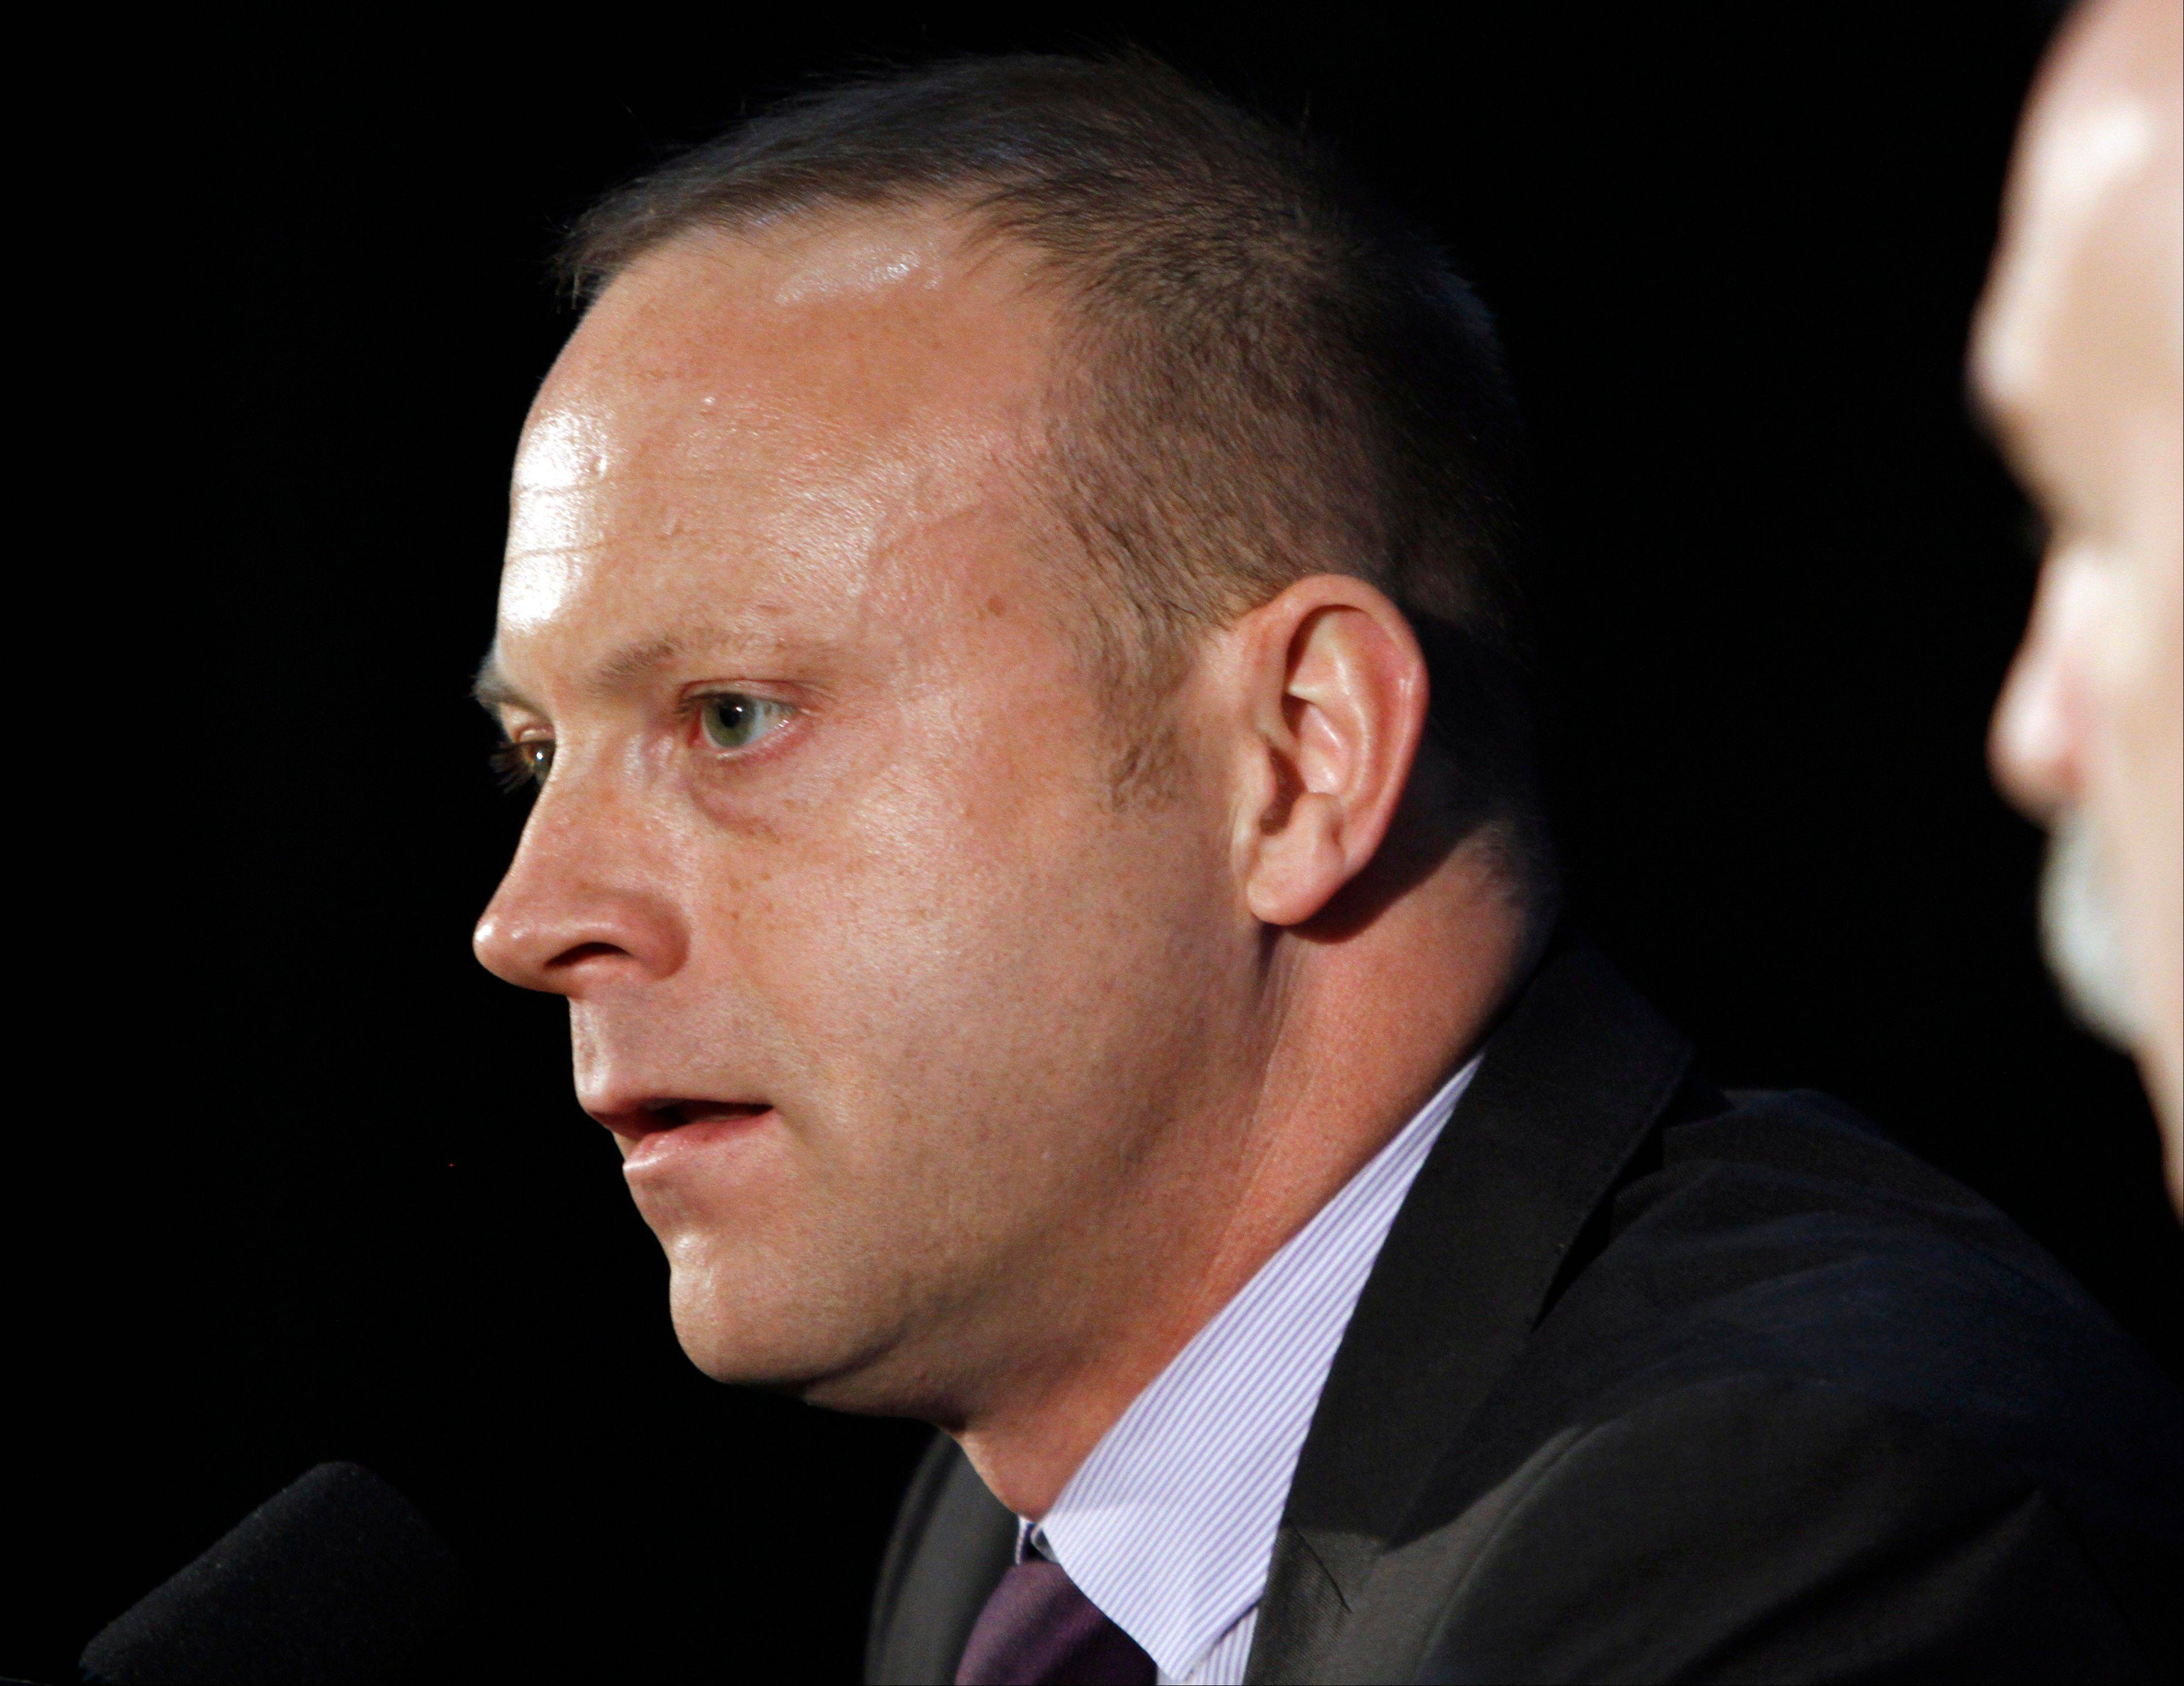 With the NHL trade deadline two weeks away, Blackhawks general manager Stan Bowman has to be careful not to upset the team chemistry in the locker room or on the ice.